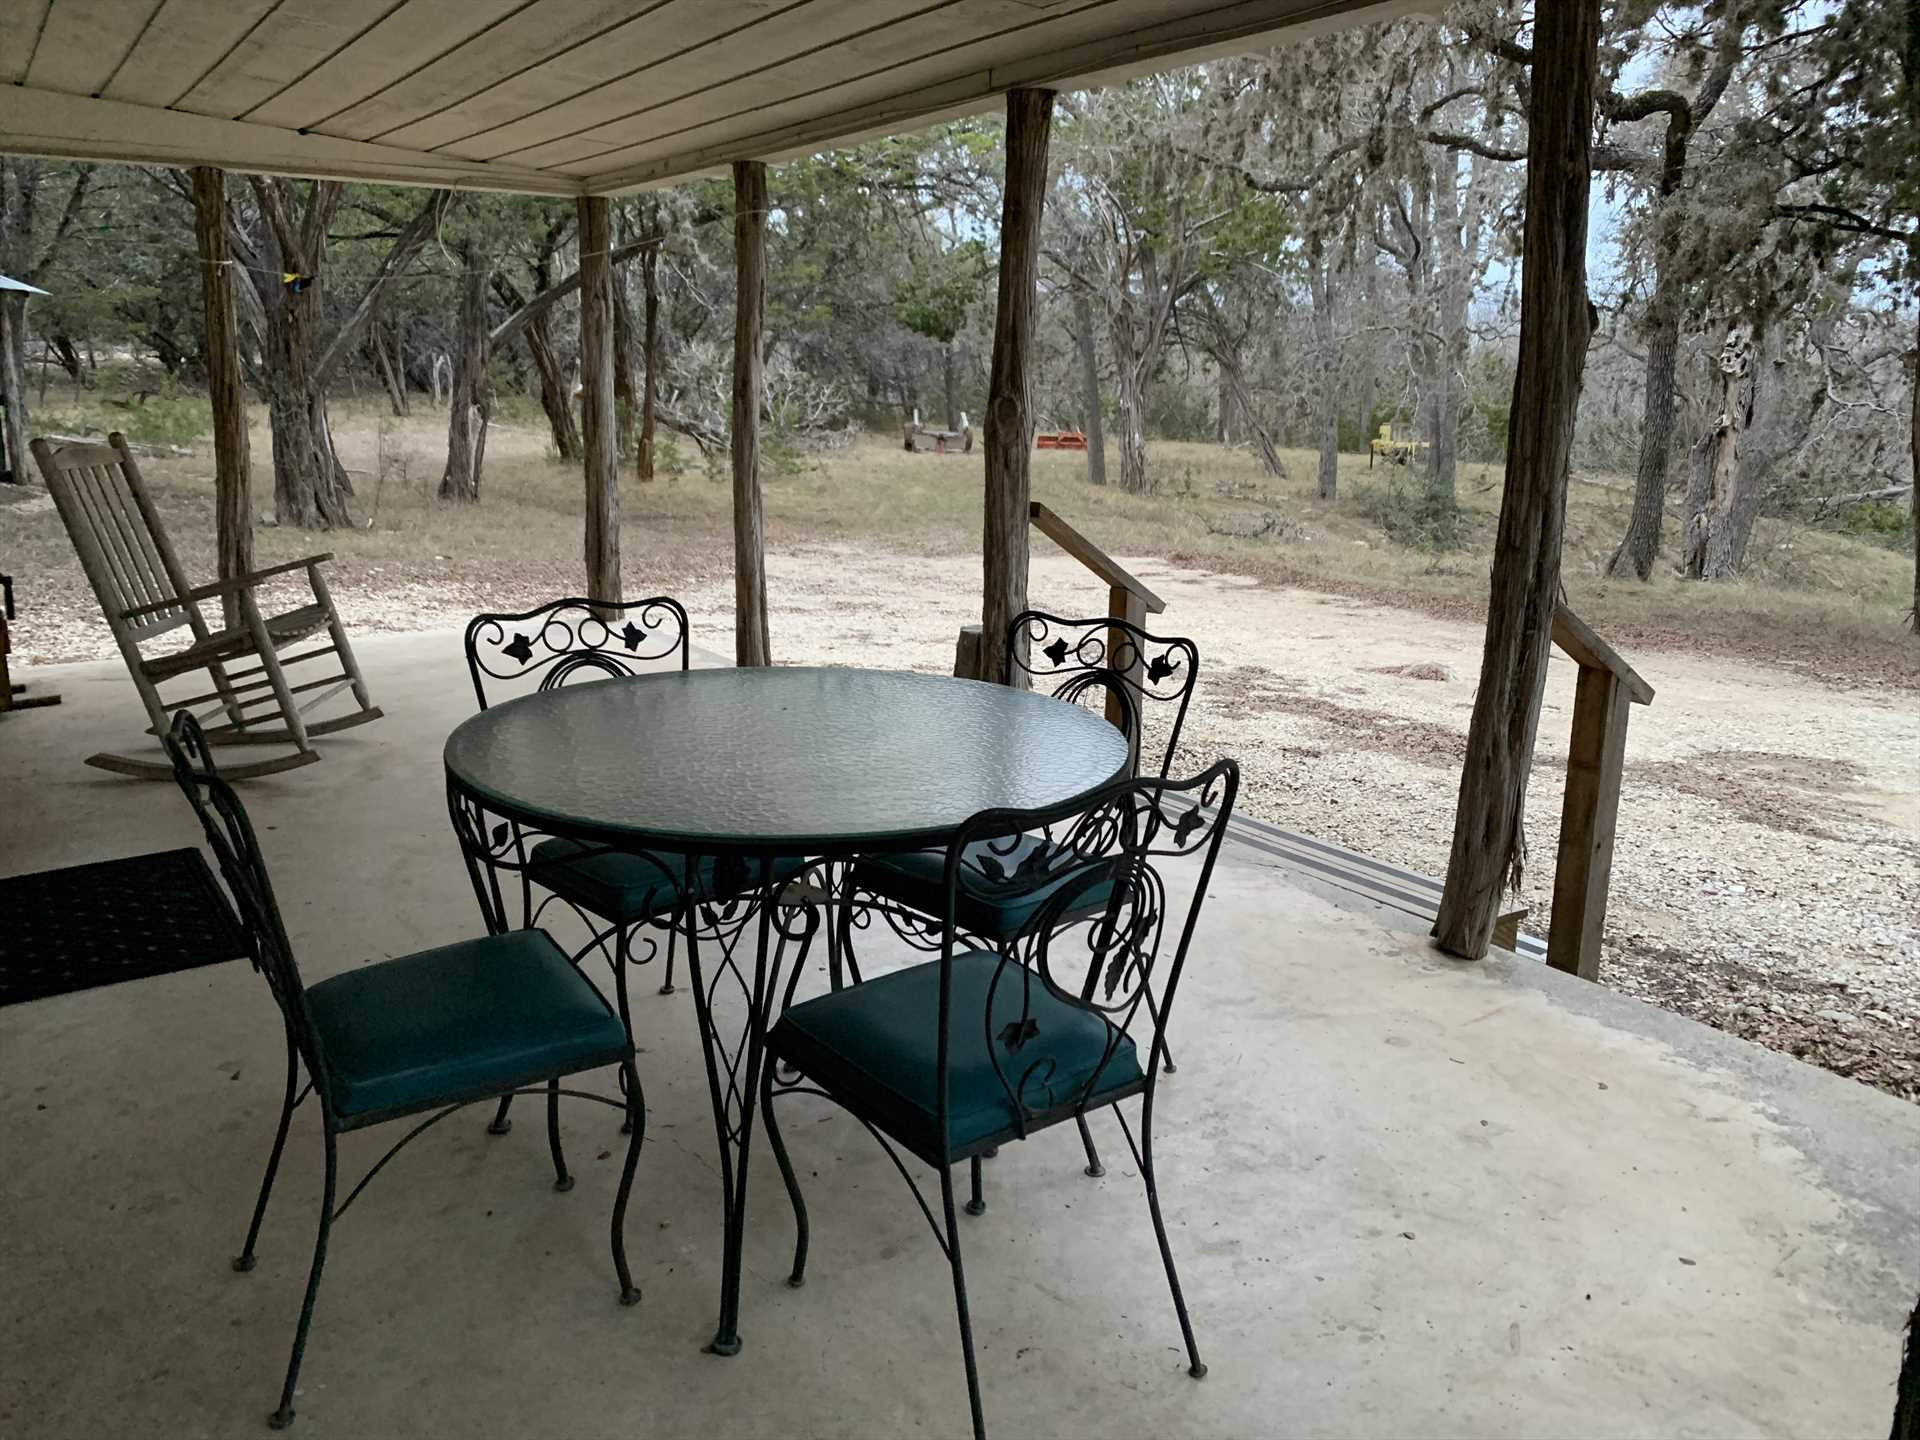 You can almost feel the soft Hill Country breezes as they cool you off on the shaded porch.